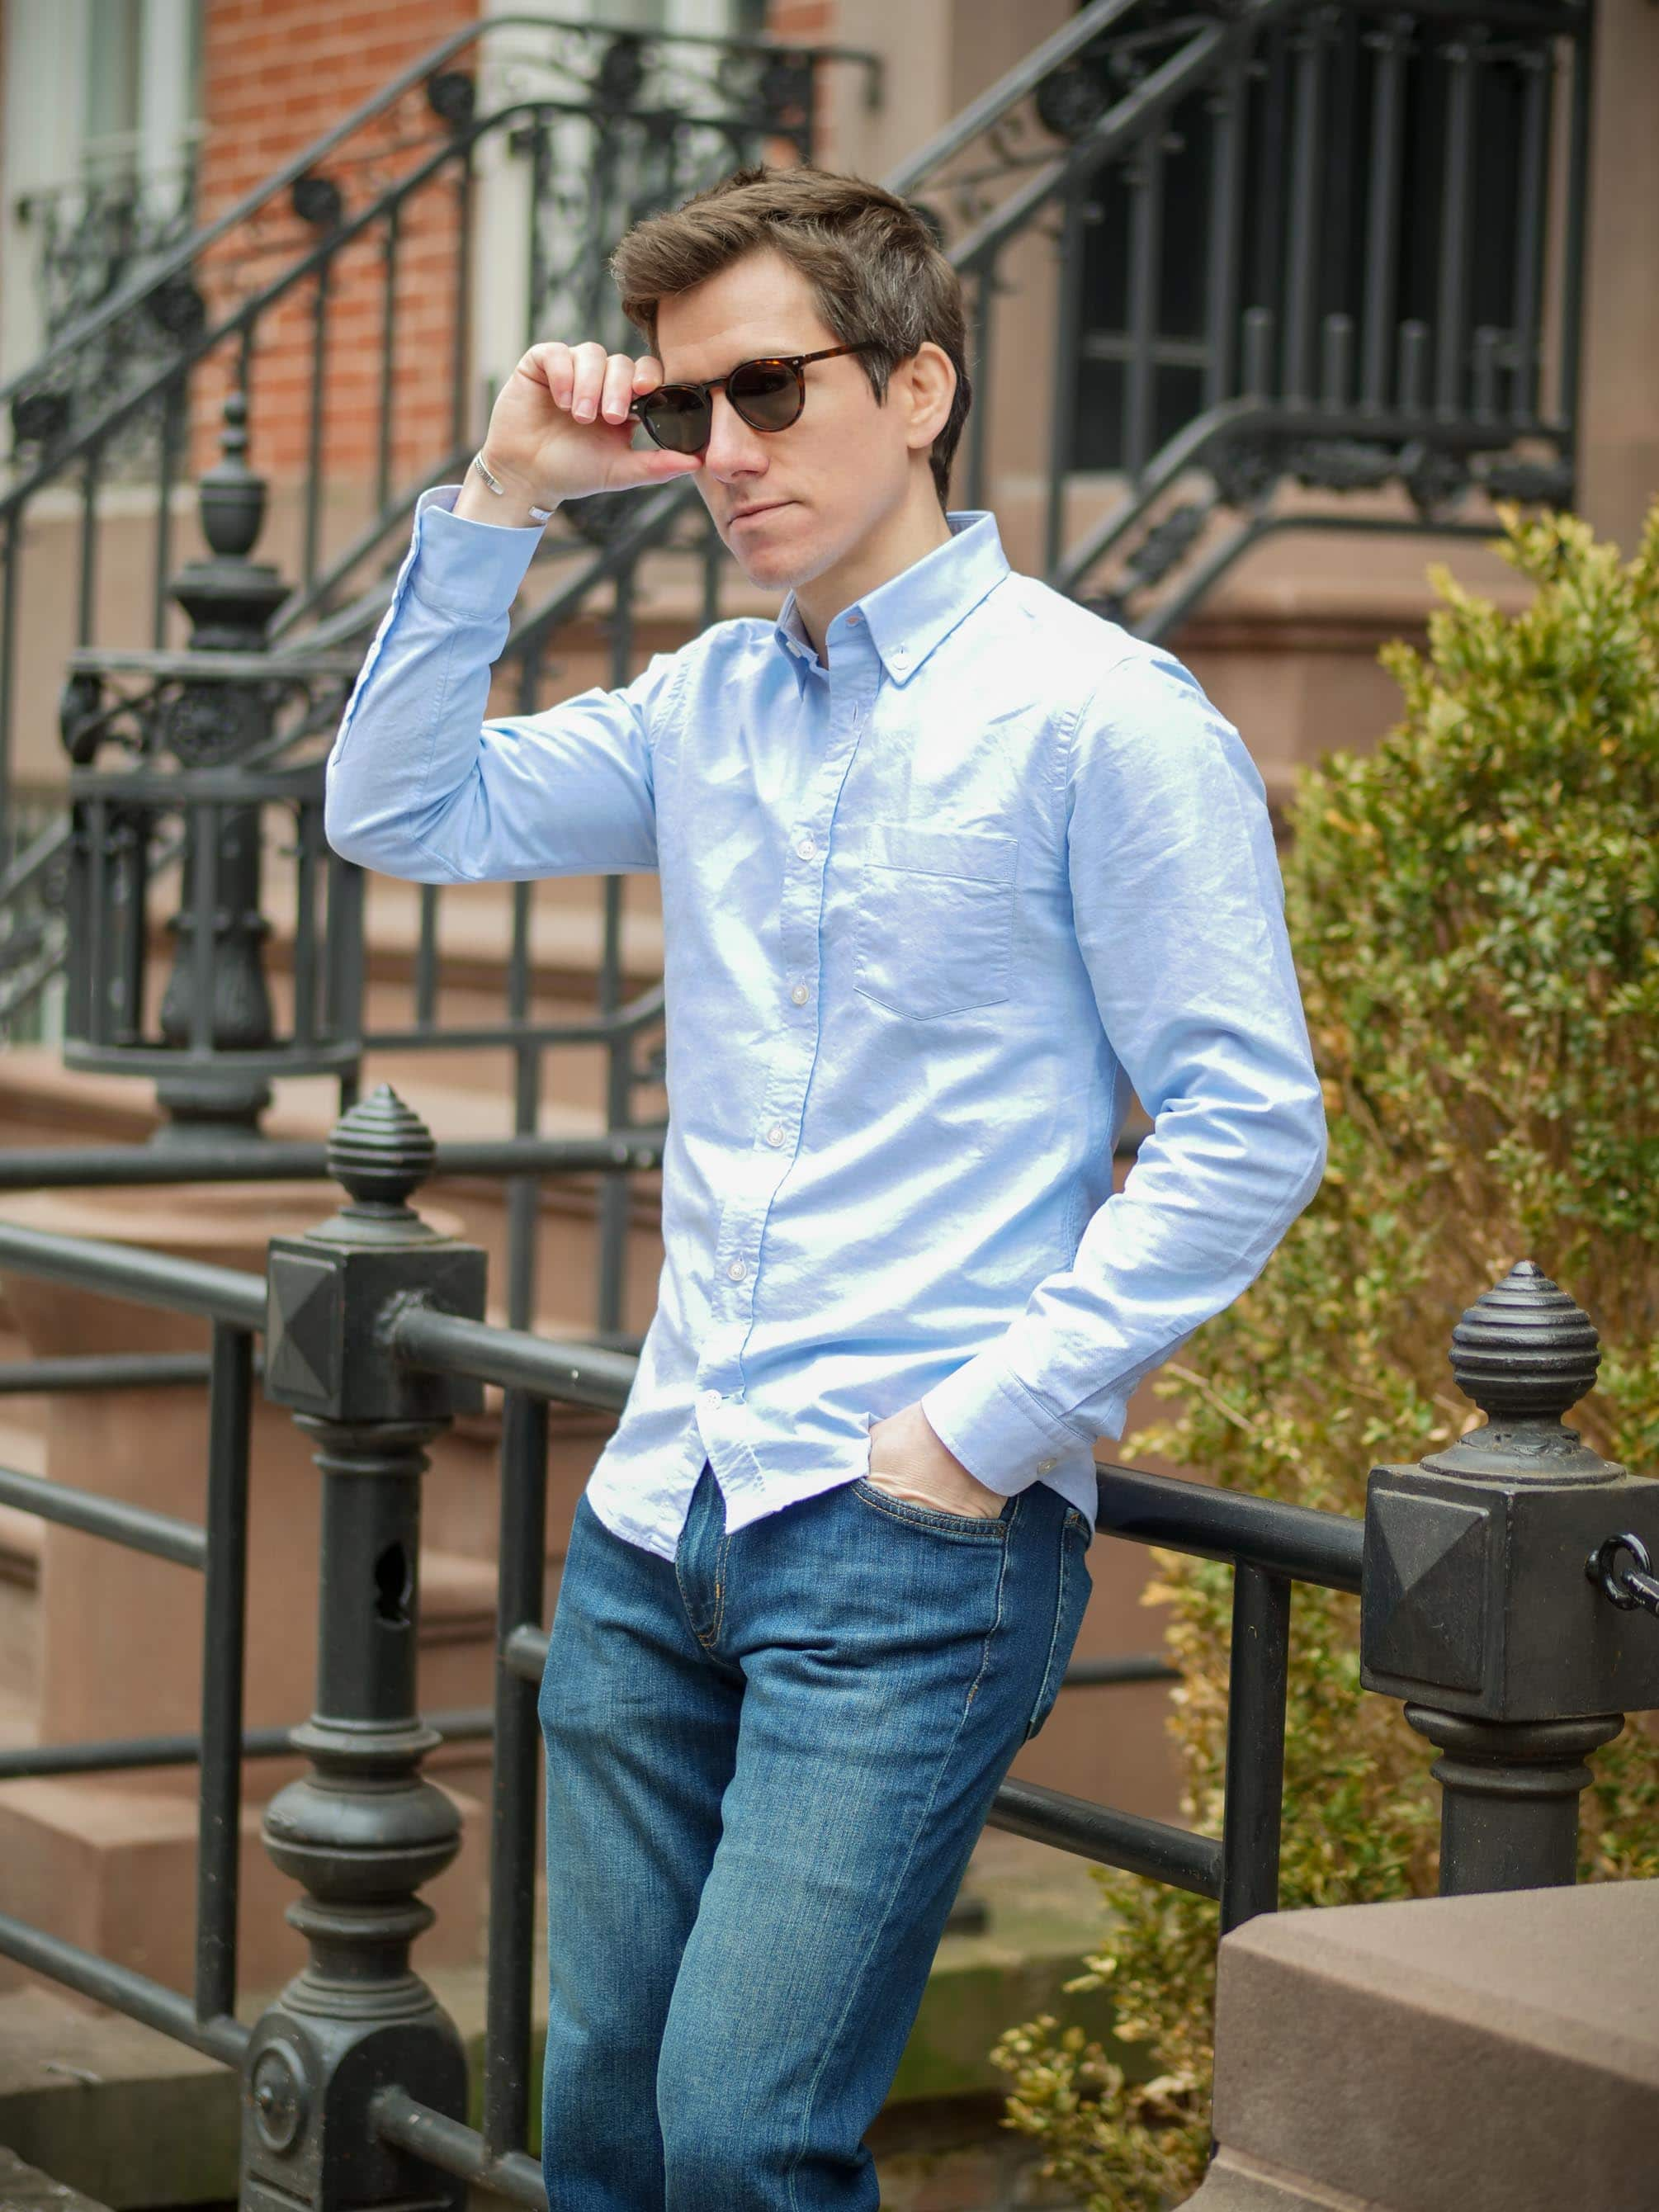 What to wear on first date with taurus man